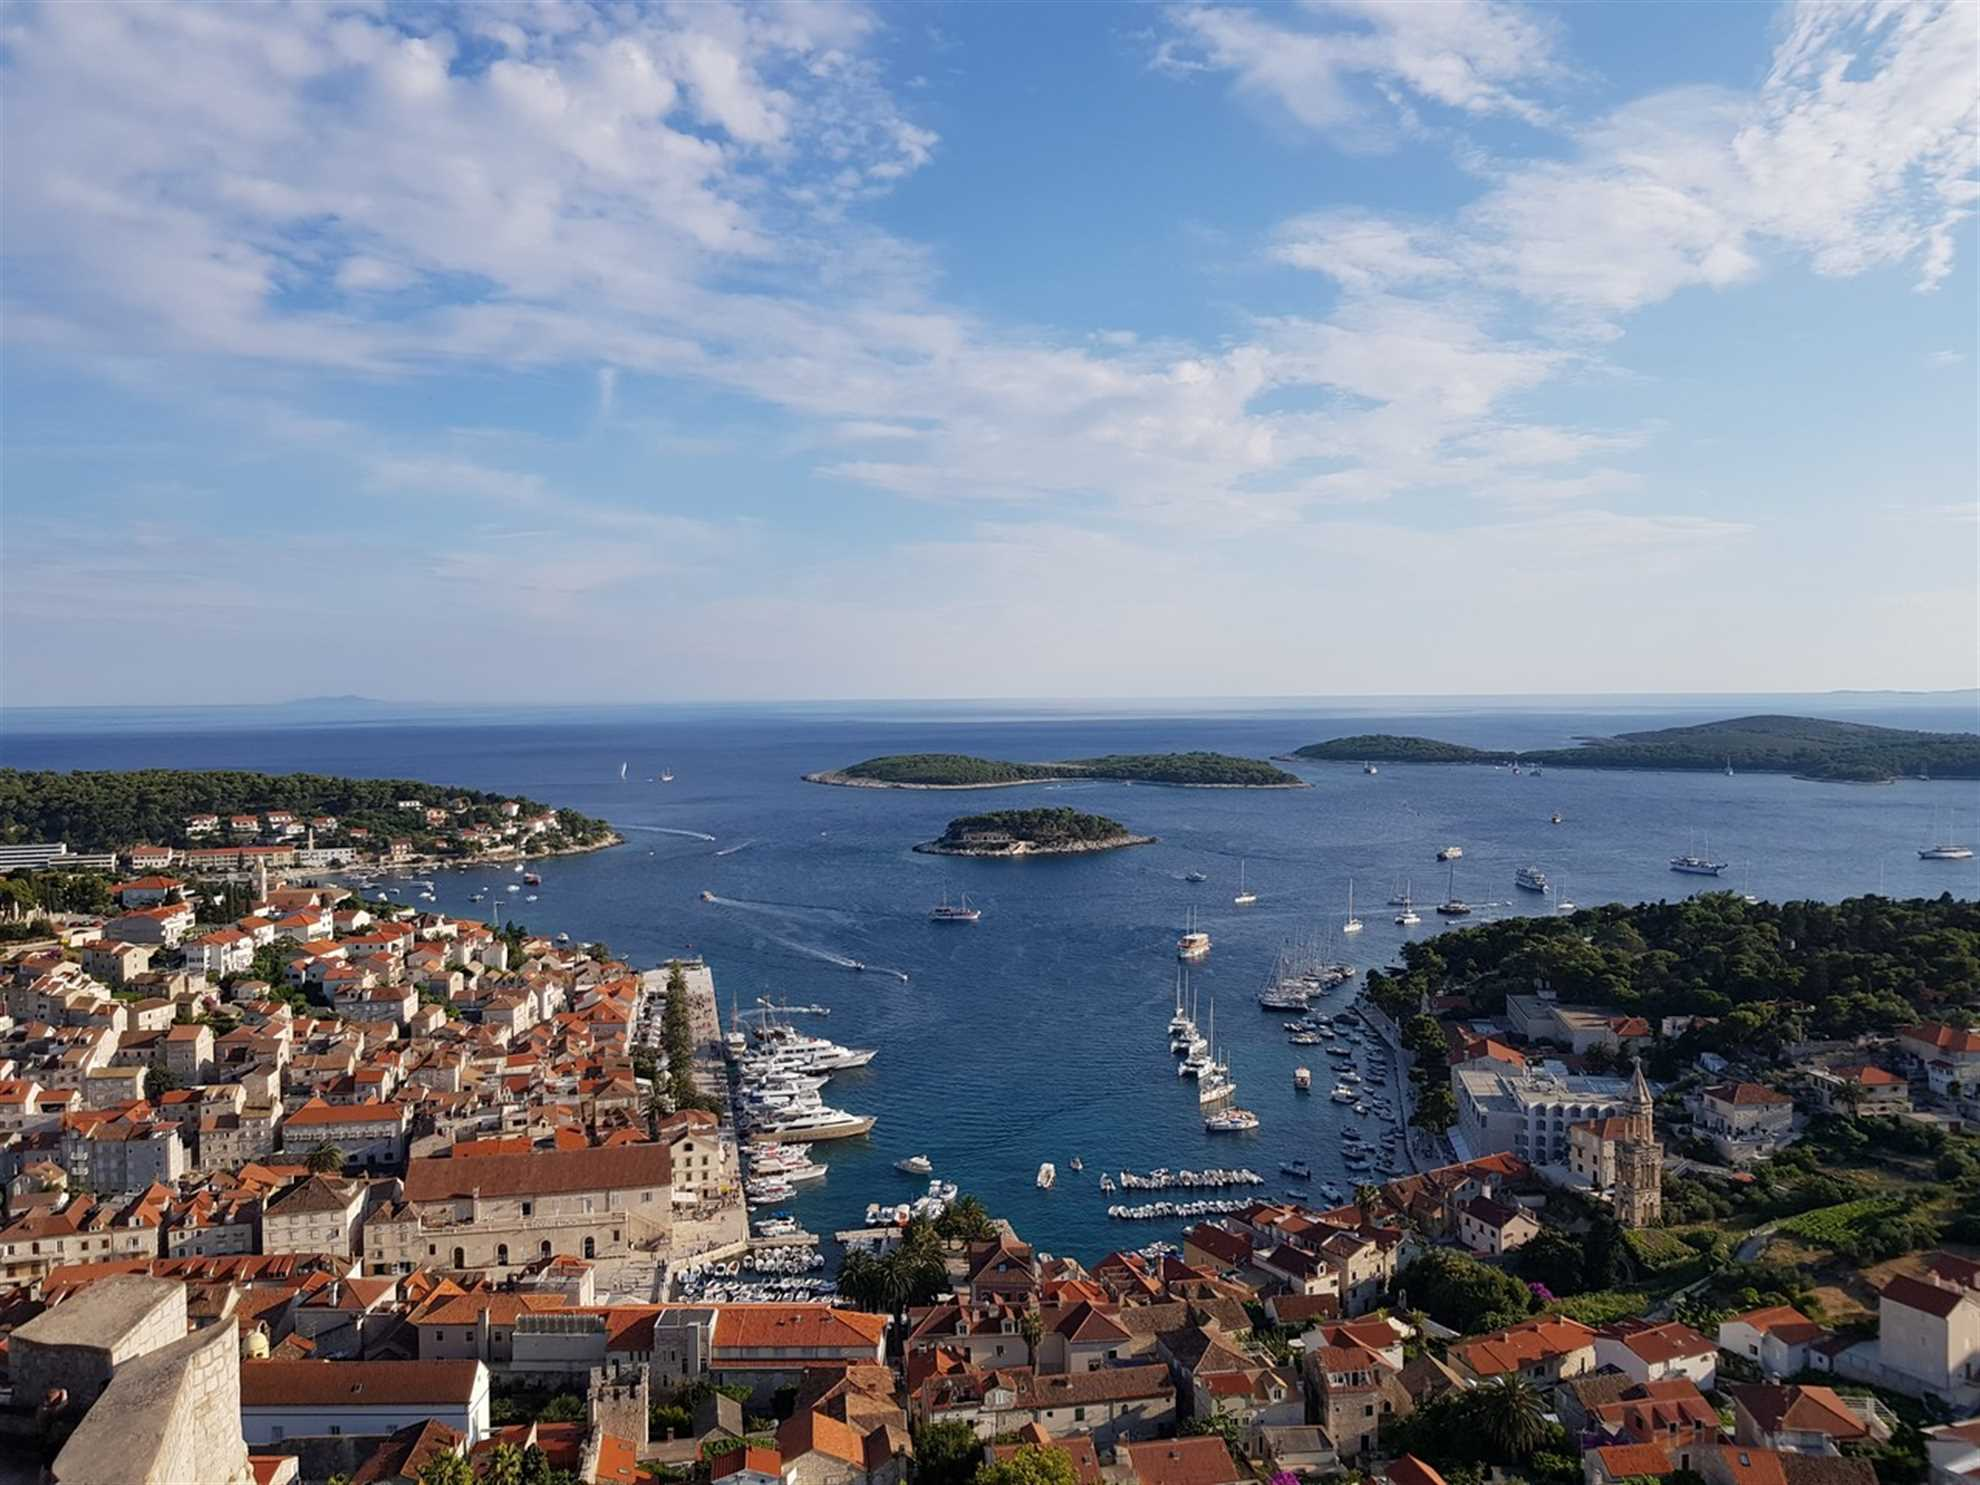 Hvar town and The Pakleni Islands